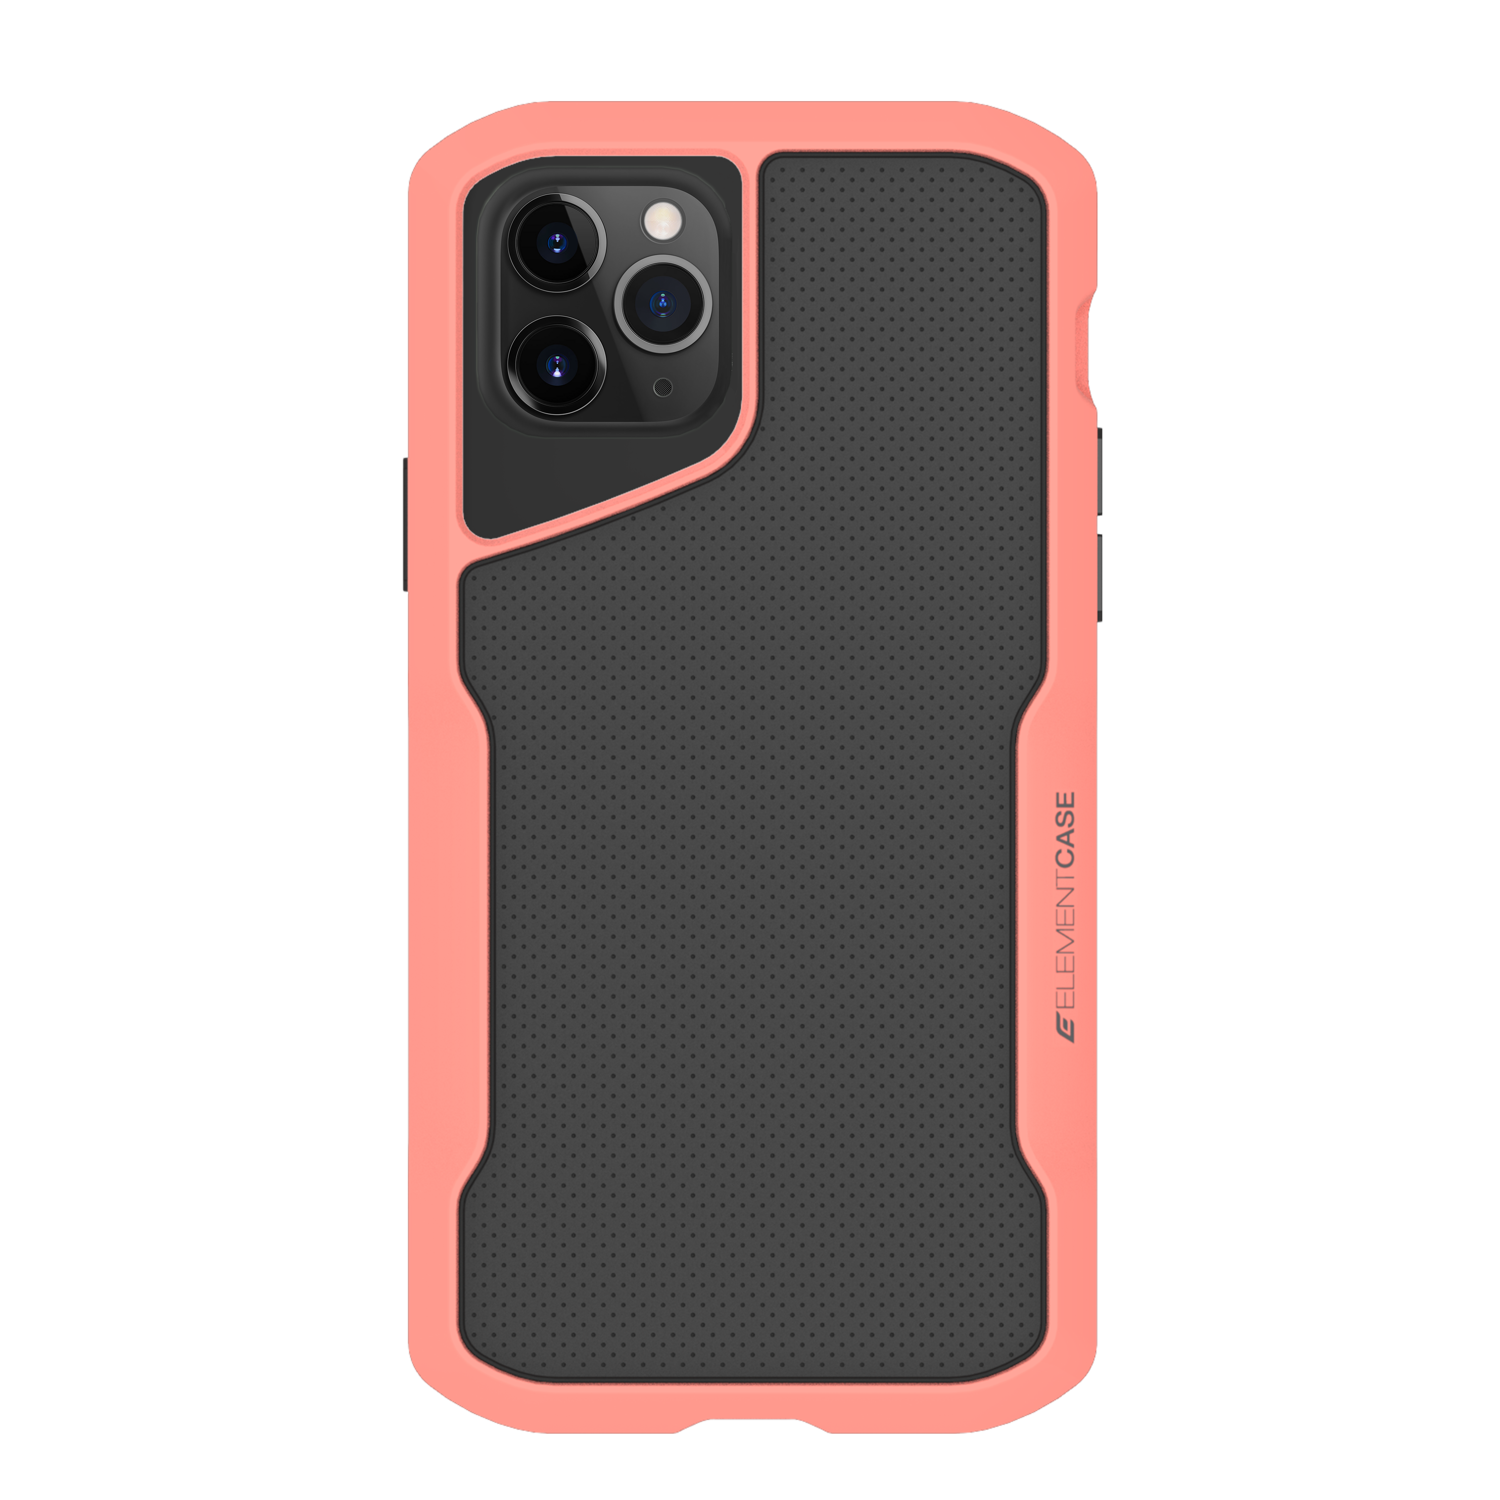 Element Case Shadow Series case for iPhone 11 Pro